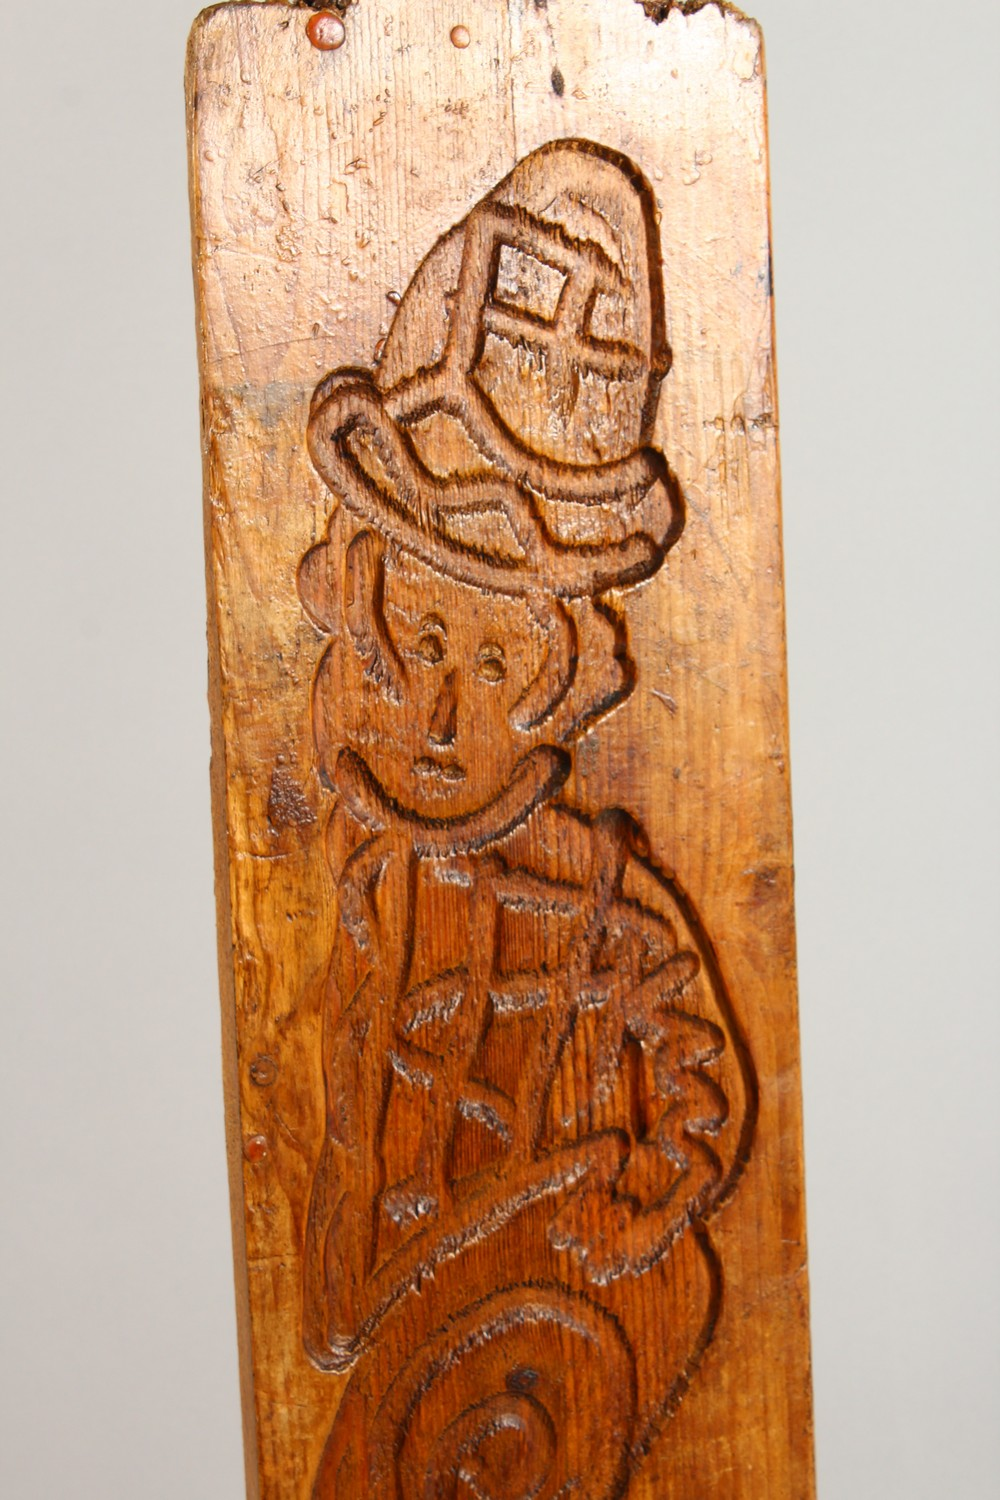 Lot 1554 - A 19TH CENTURY SINGLE SIDED PINE GINGERBREAD MOULD, carved with a figure of a man. 33ins x 8ins.